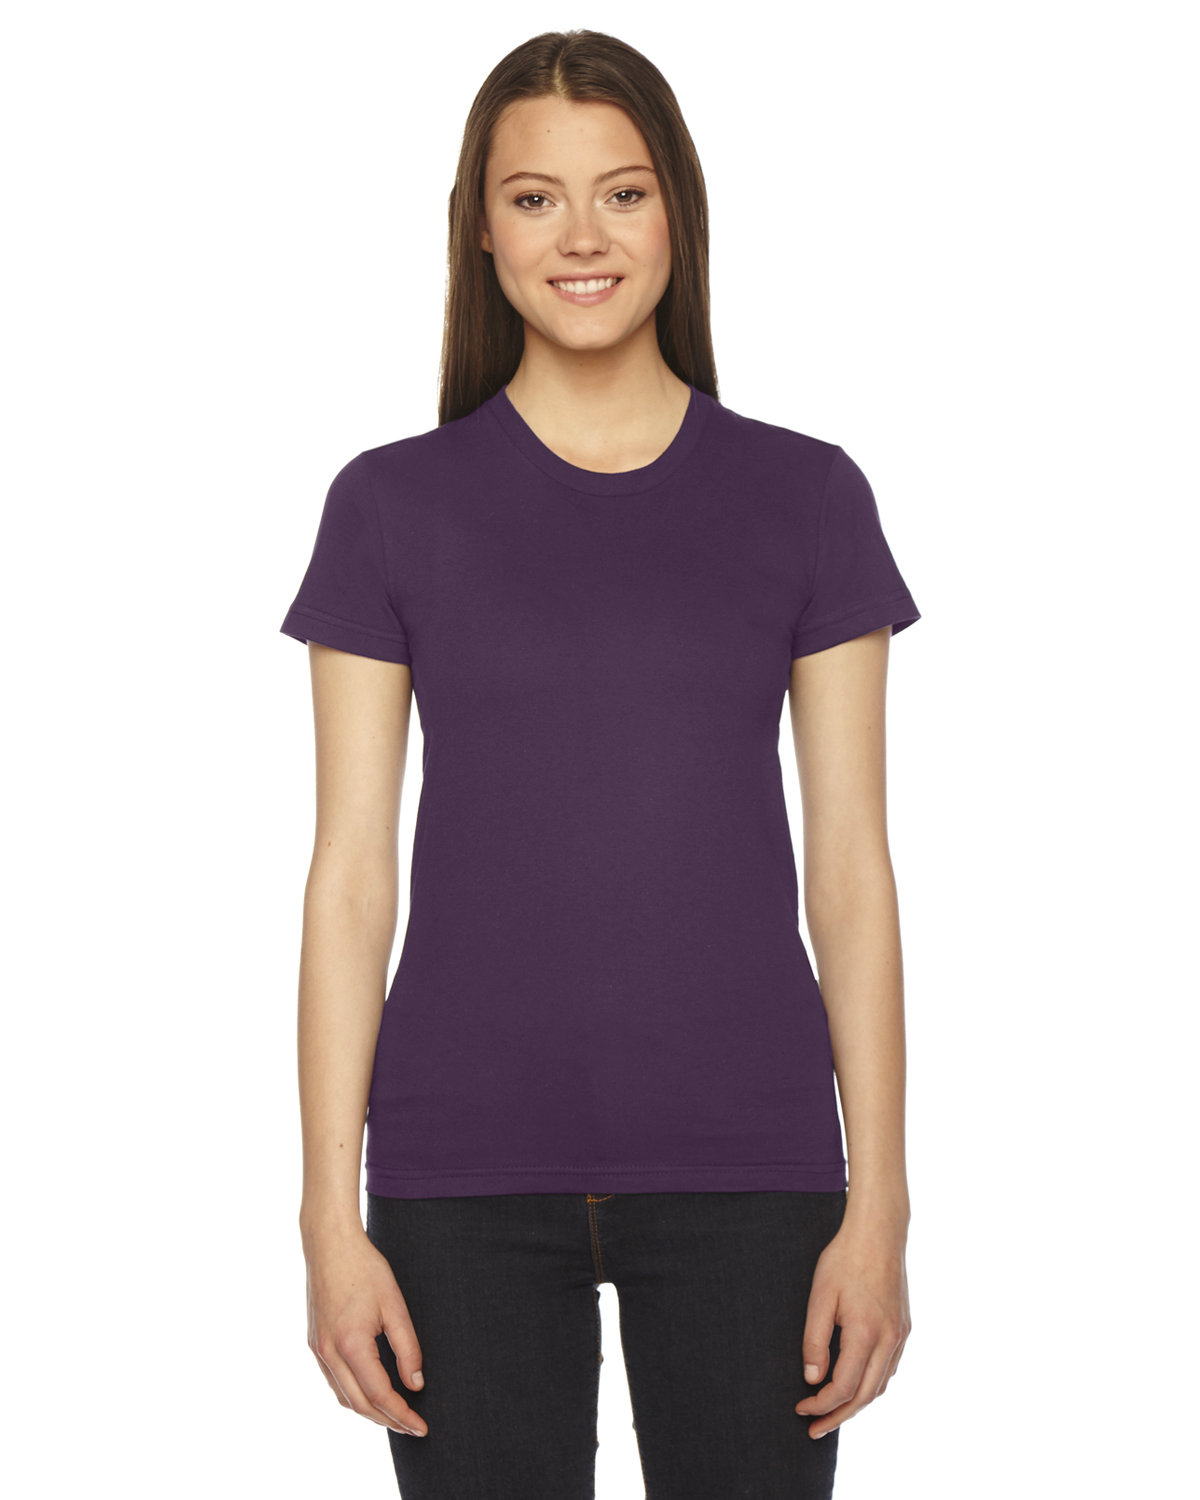 American Apparel Ladies' Fine Jersey Short-Sleeve T-Shirt EGGPLANT